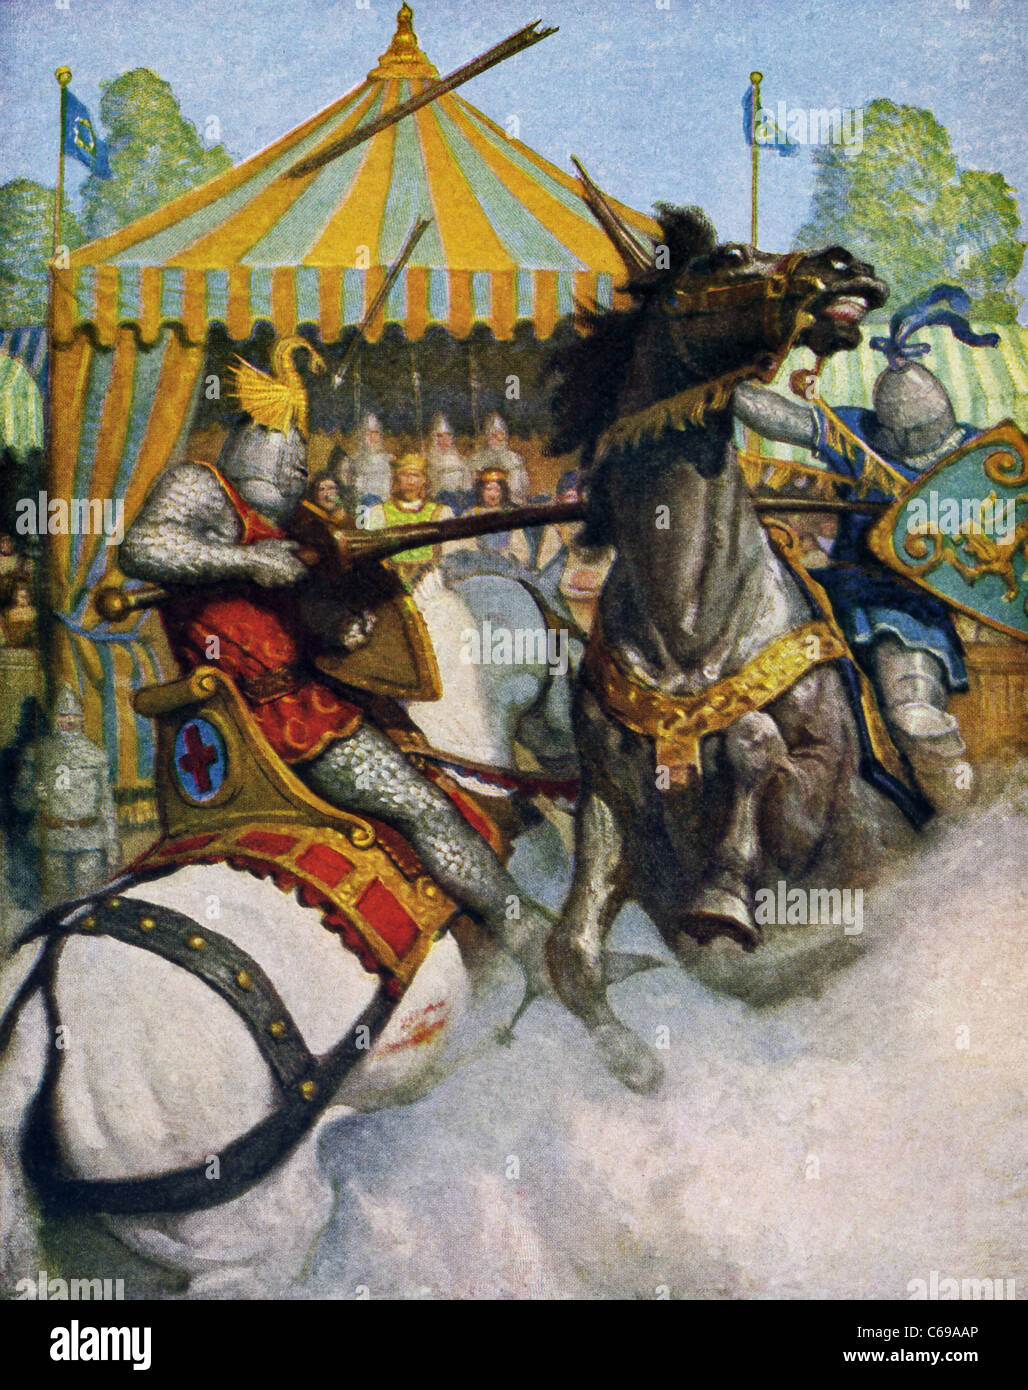 In this joust in front of the royal tent, Sir Mador's spear (right) breaks to pieces and Launcelot's holds - Stock Image